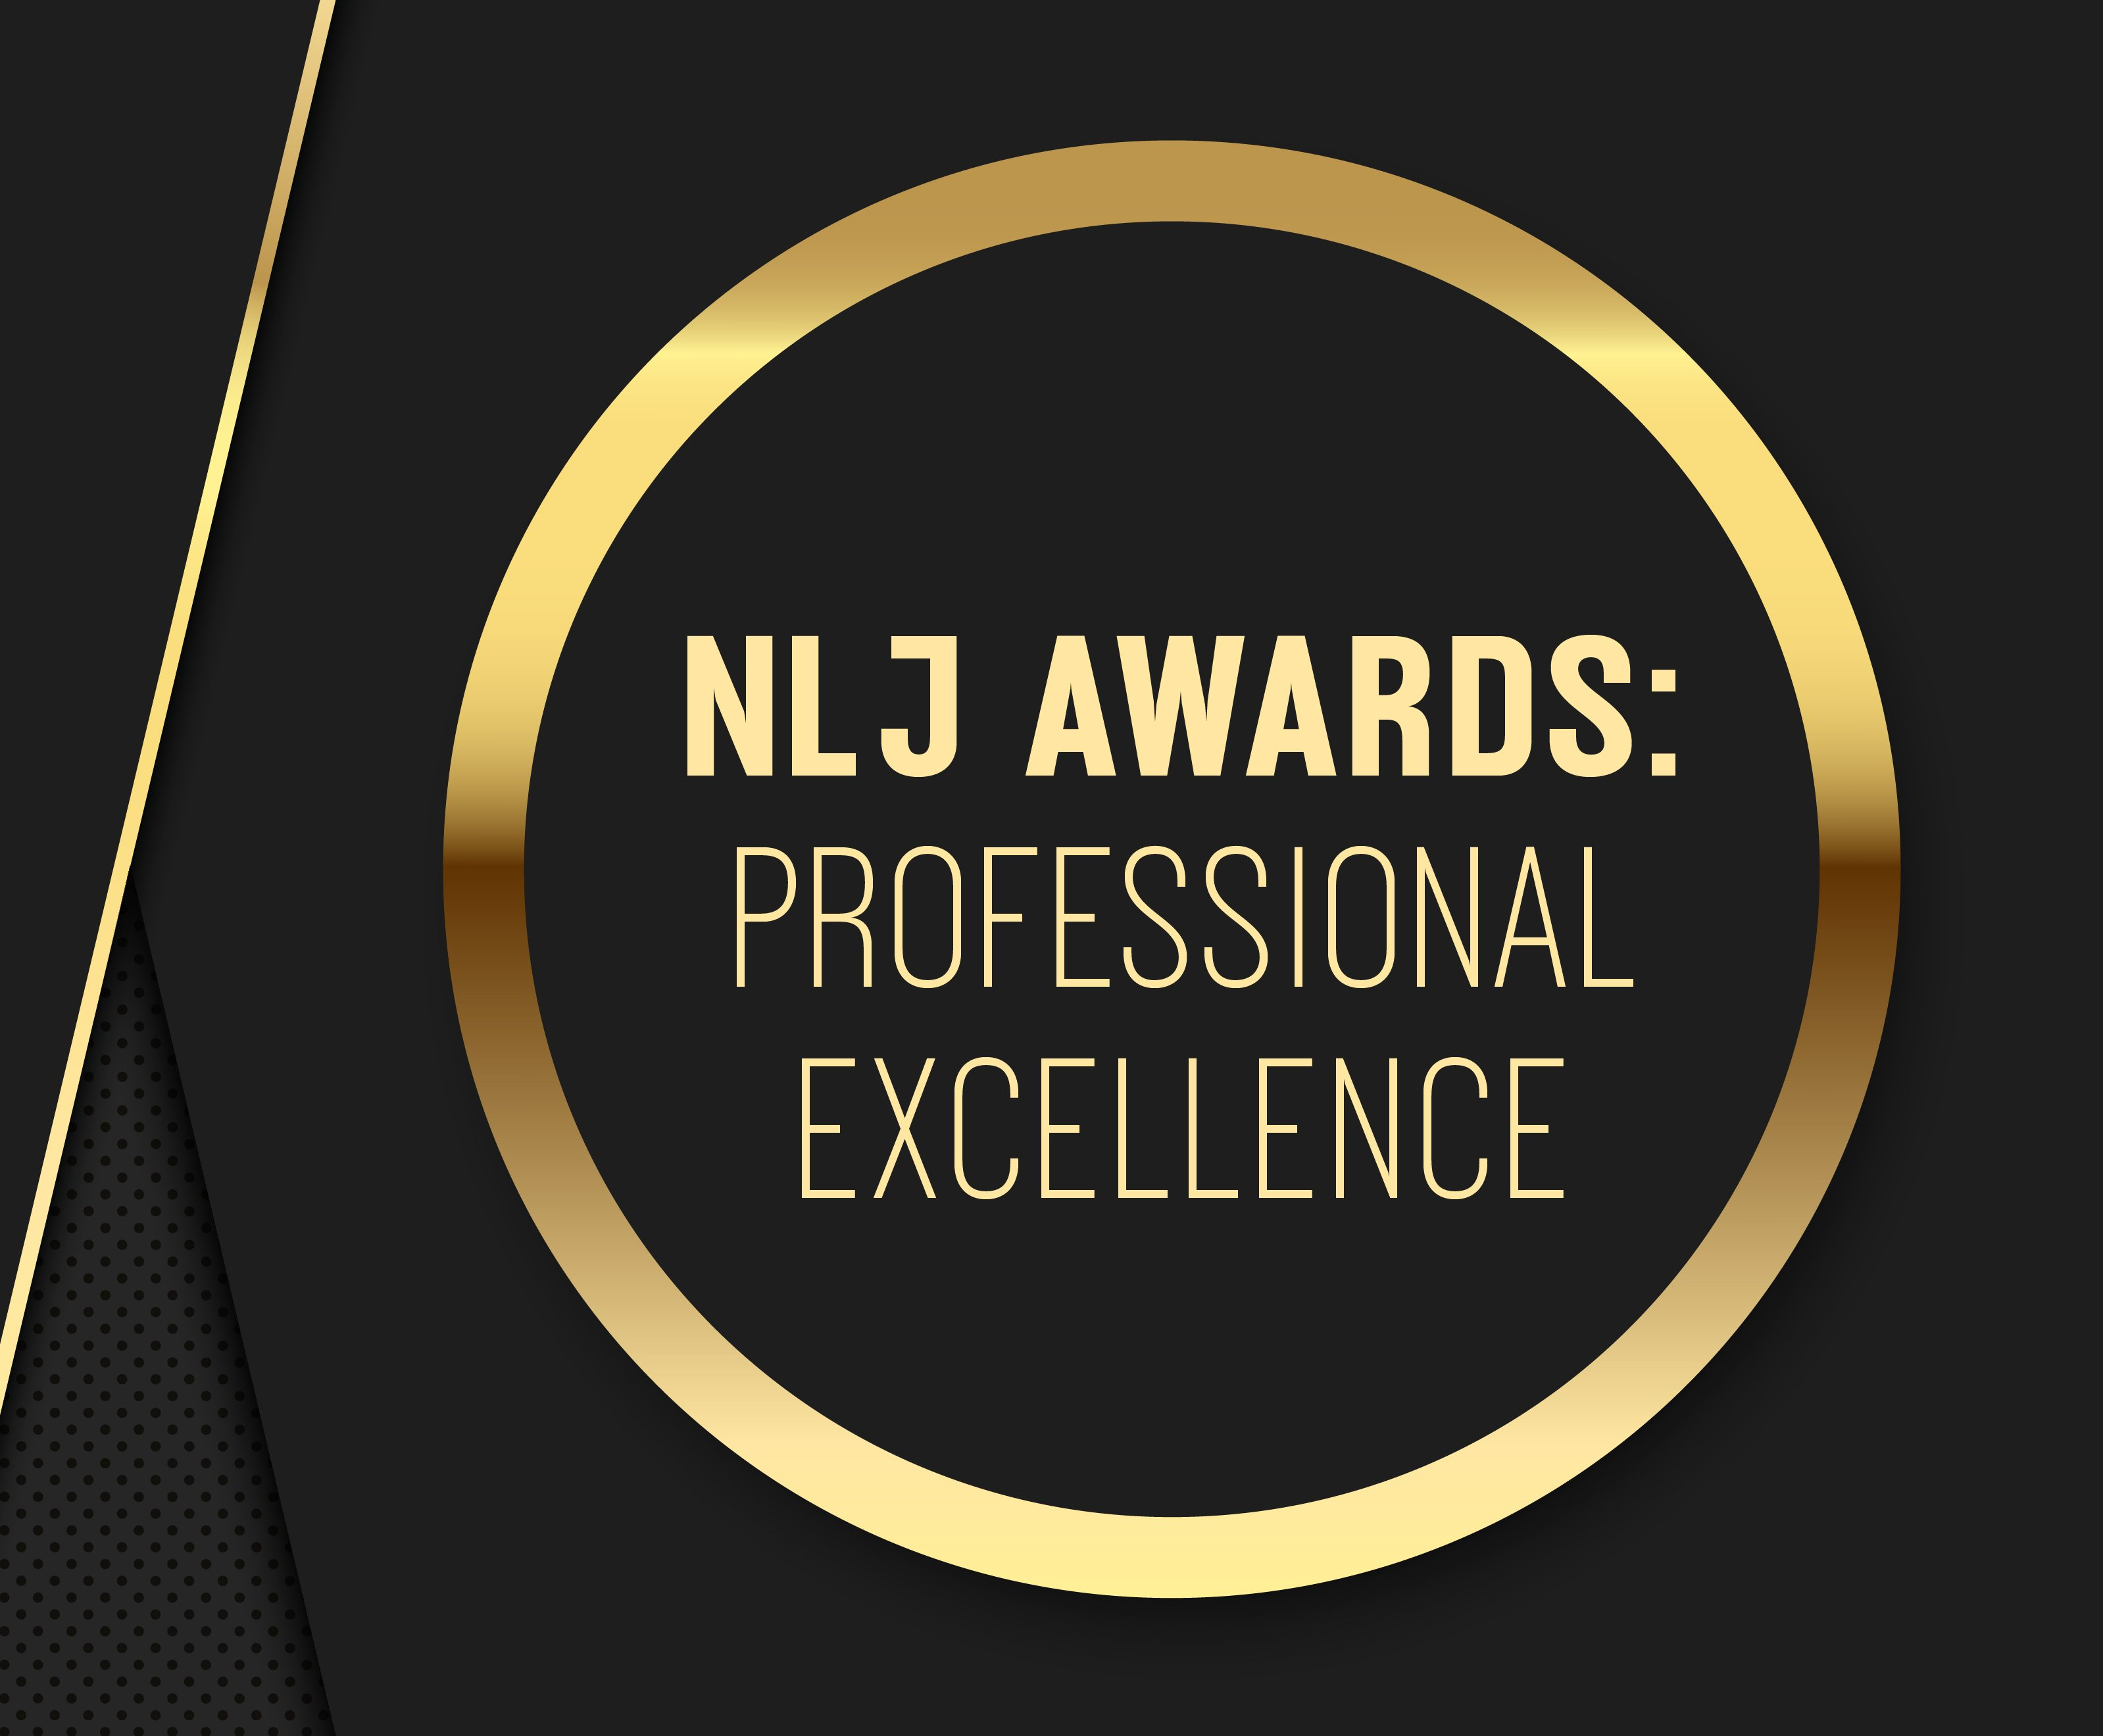 law.com - Scott Graham - The 2021 NLJ Awards: Professional Excellence-Our Winners | National Law Journal